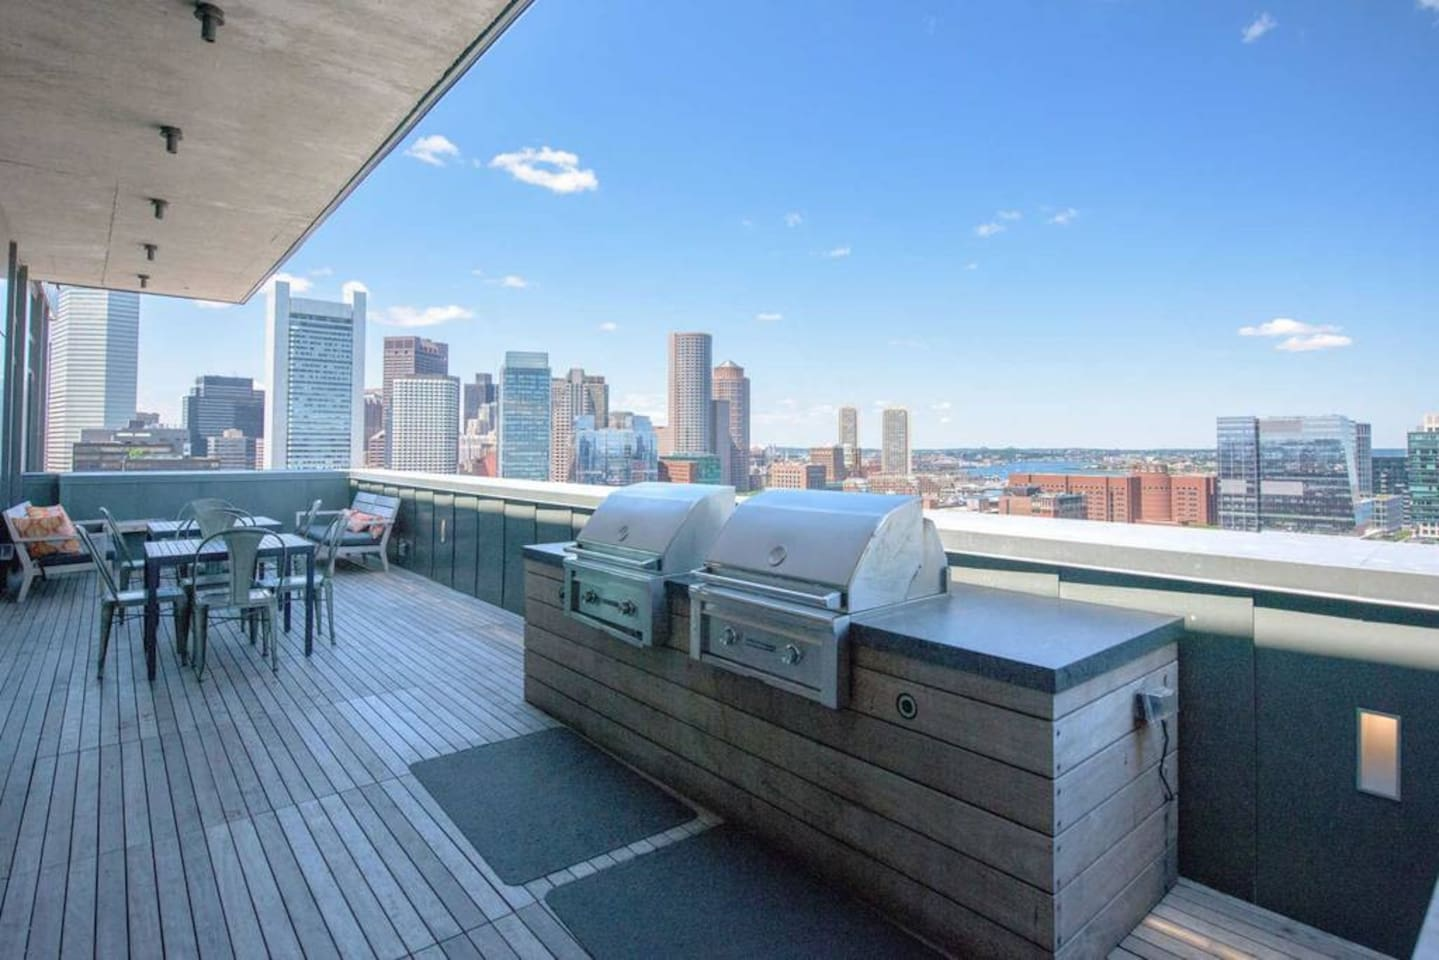 The perfect place to take in all Boston has to offer